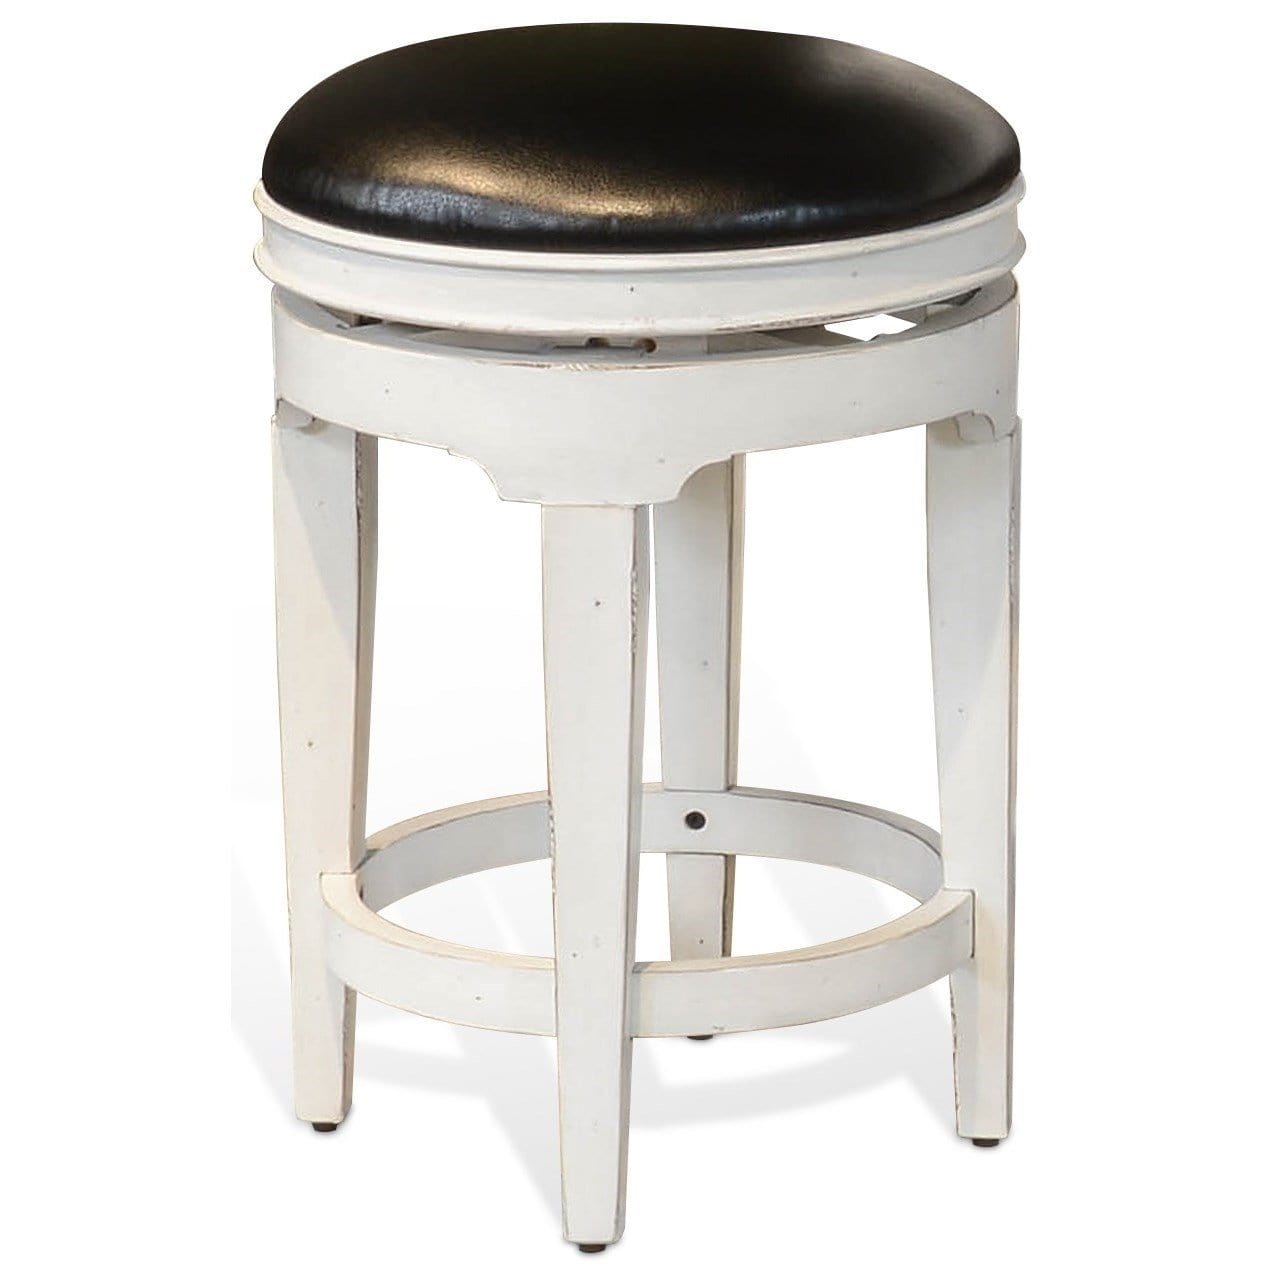 (Sun) Carriage Swivel Stool W Cushion White P22